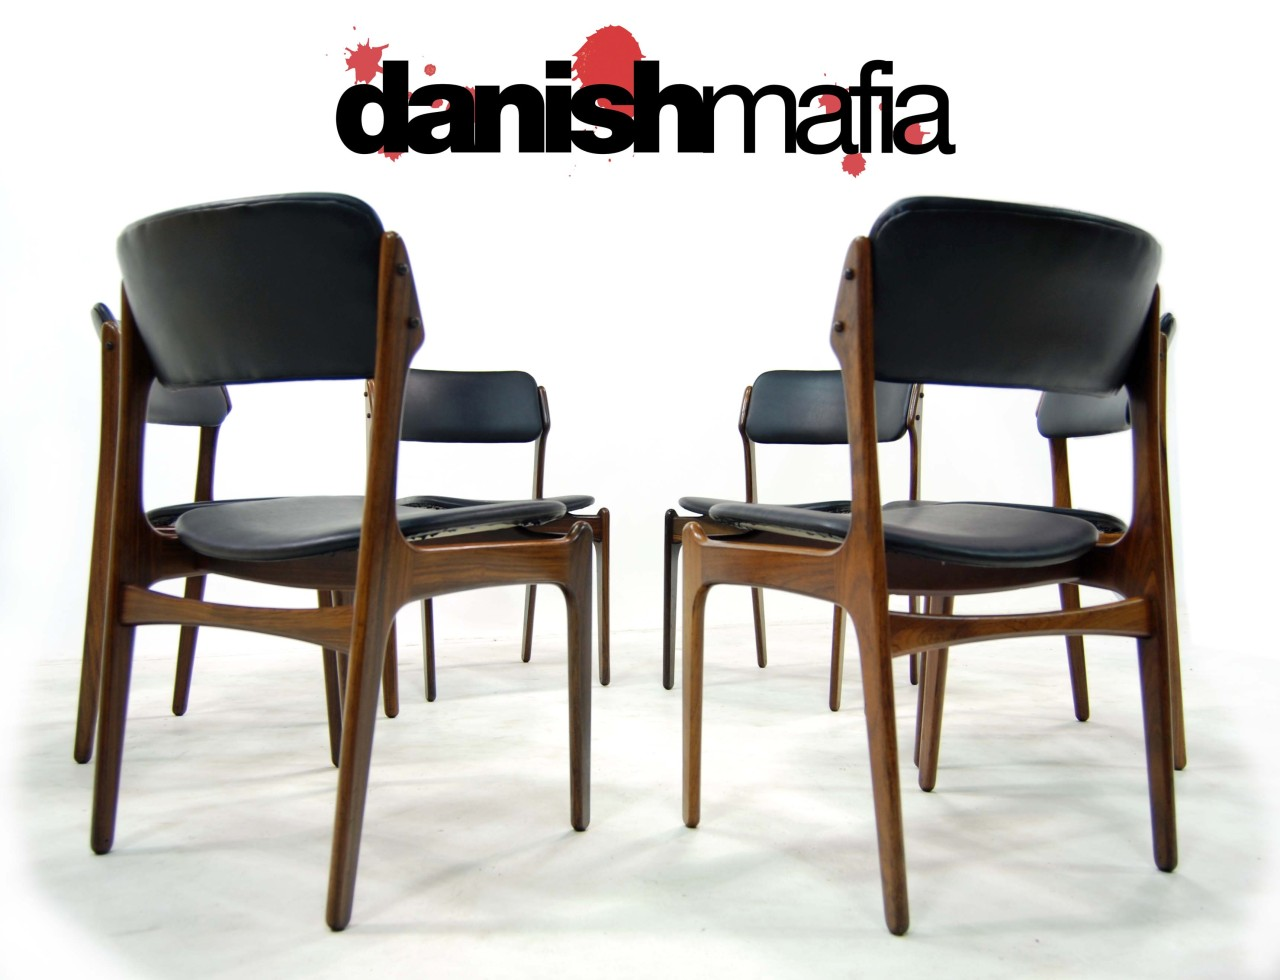 MID CENTURY DANISH MODERN ERIK BUCK ROSEWOOD DINING CHAIRS SET Danish Mafia